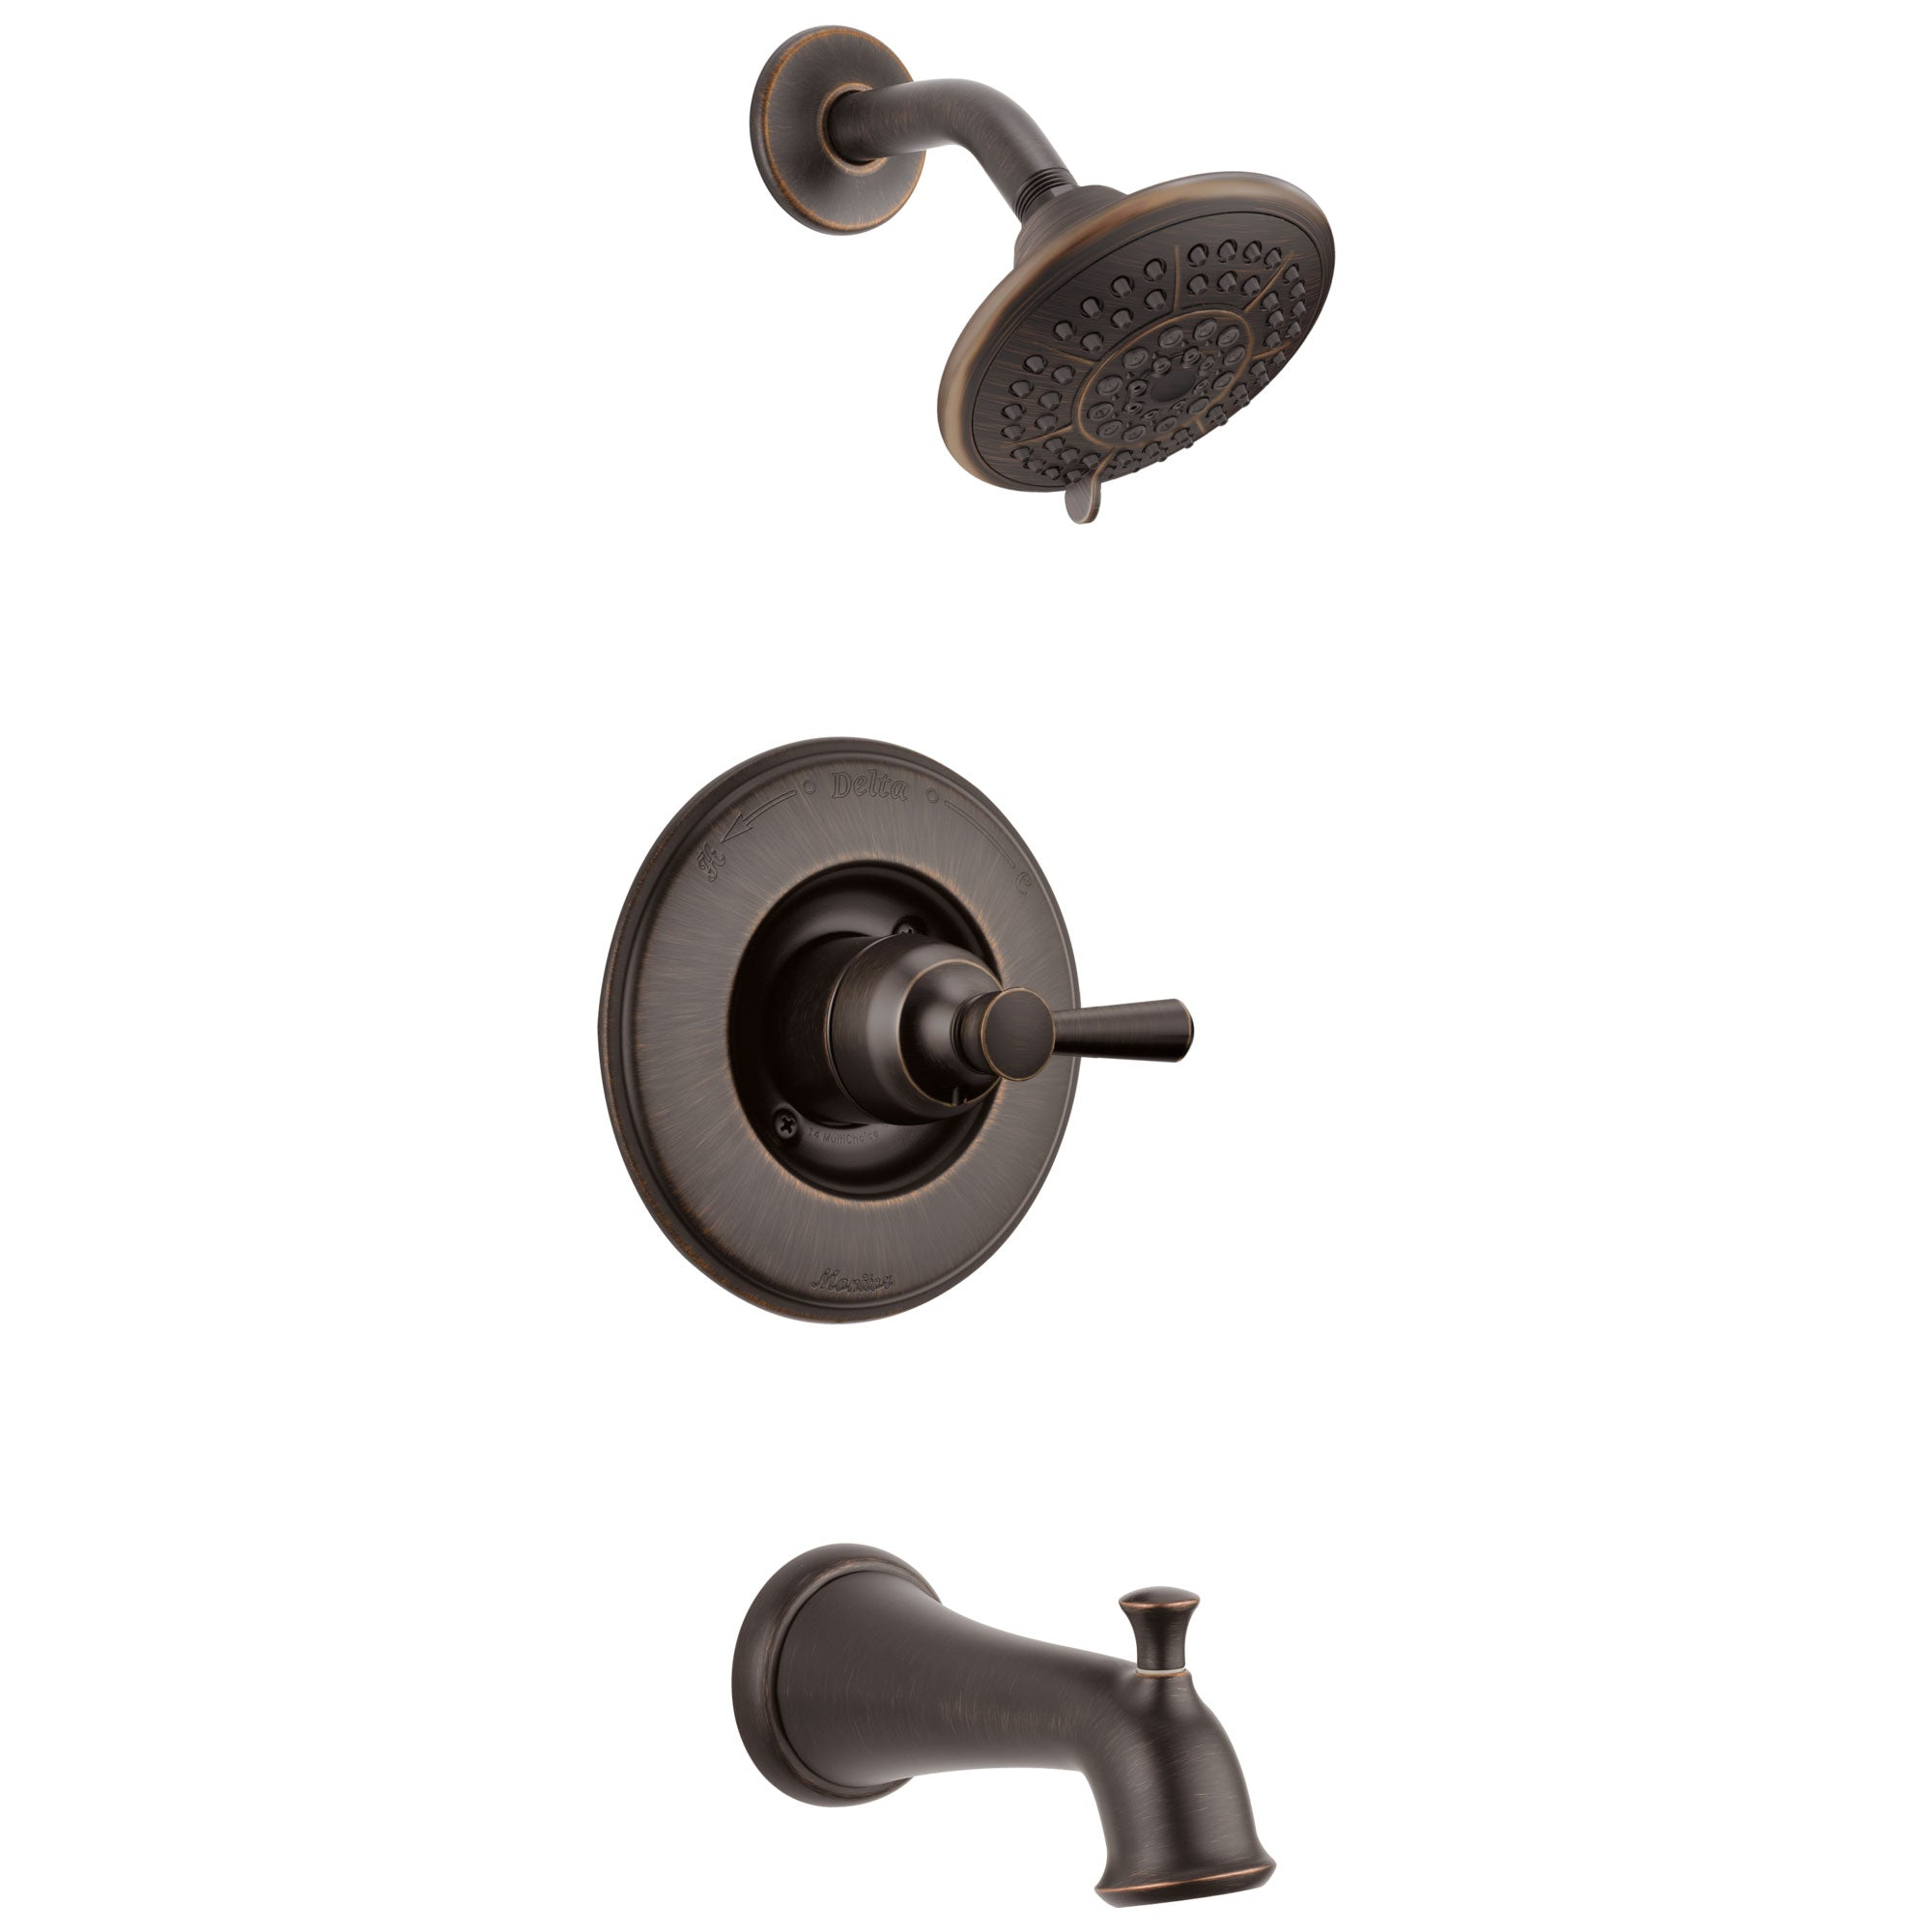 Delta Linden Collection Venetian Bronze Monitor 14 Contemporary Shower Faucet, Control, and Tub Spout Trim Kit (Requires Rough-in Valve) DT14493RB